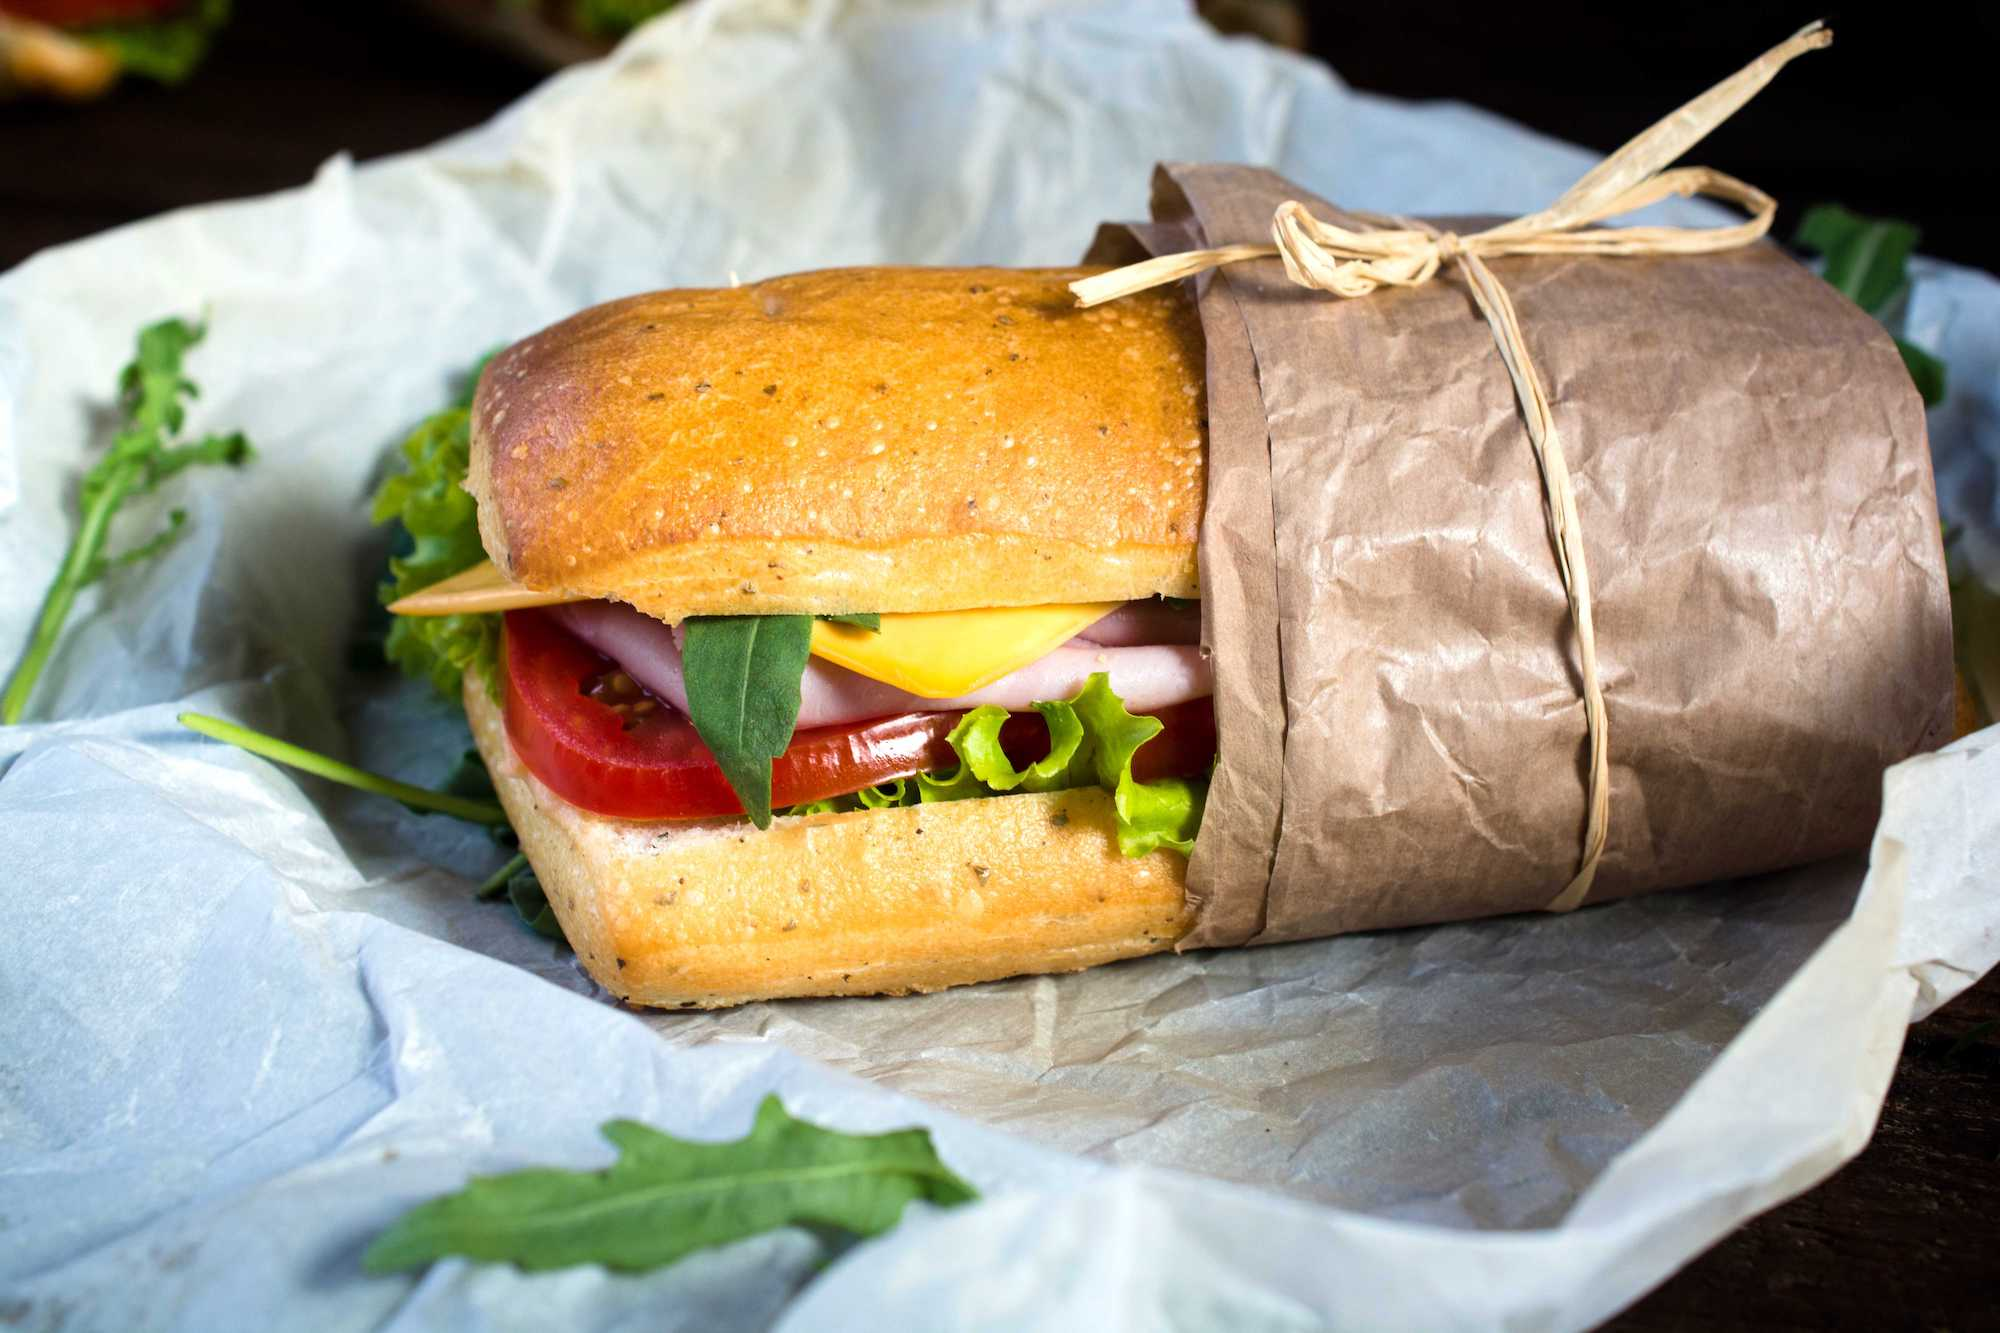 tastefully wrapped sandwich